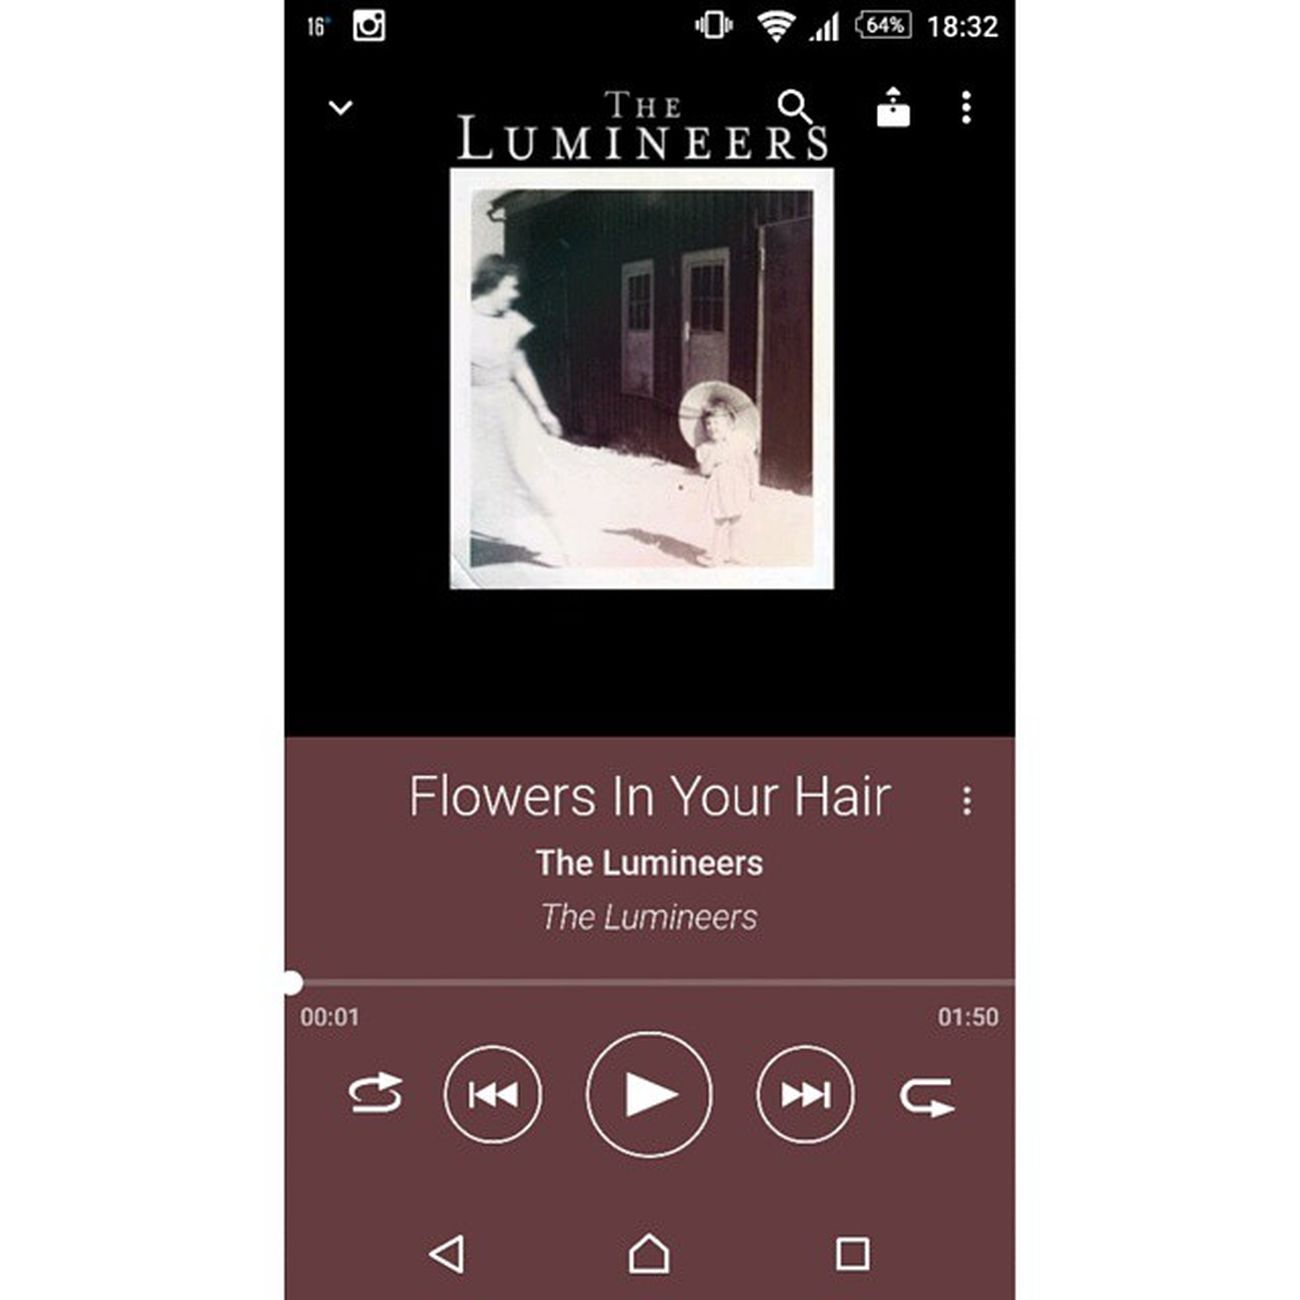 Thelumineers Flowersinyourhair Music MusicTime love happy alternative mymusic Spotify